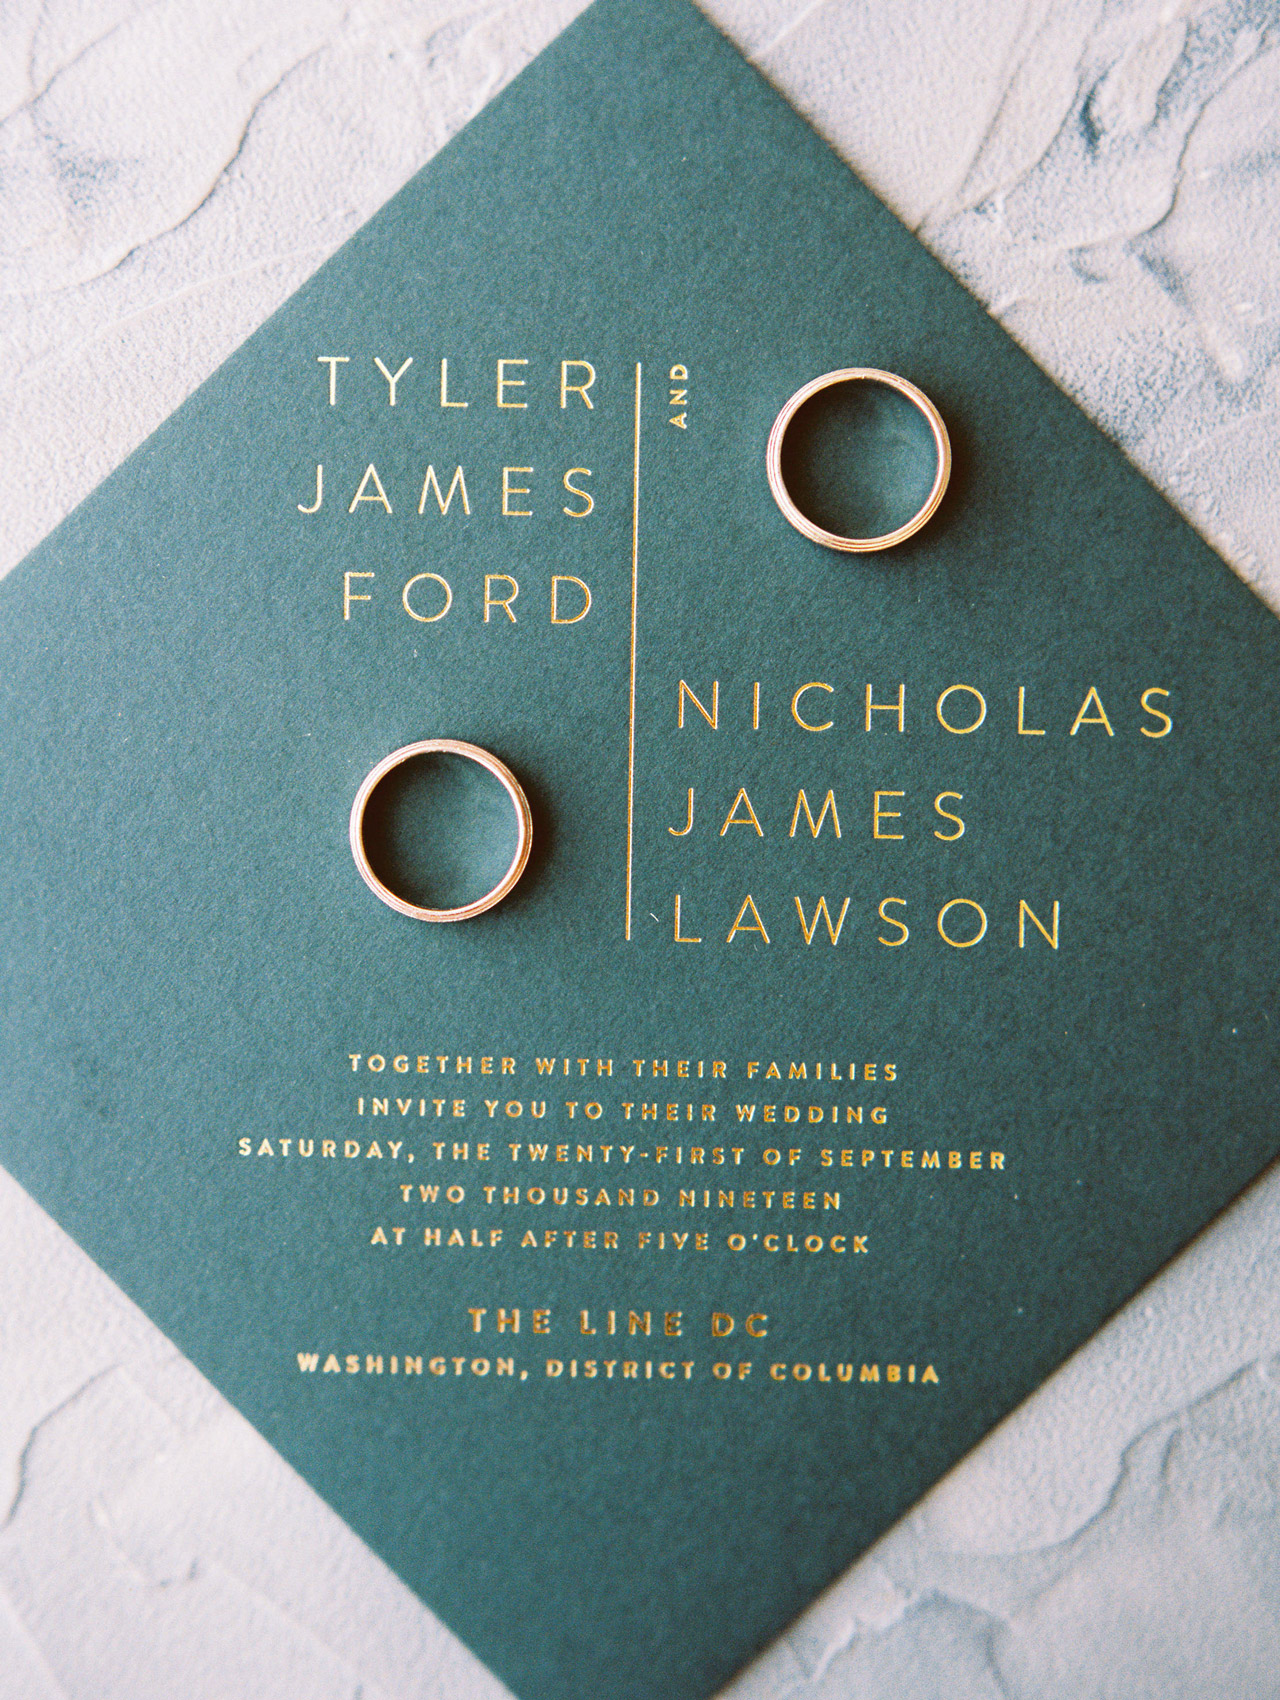 close-up of diamond-shaped invite